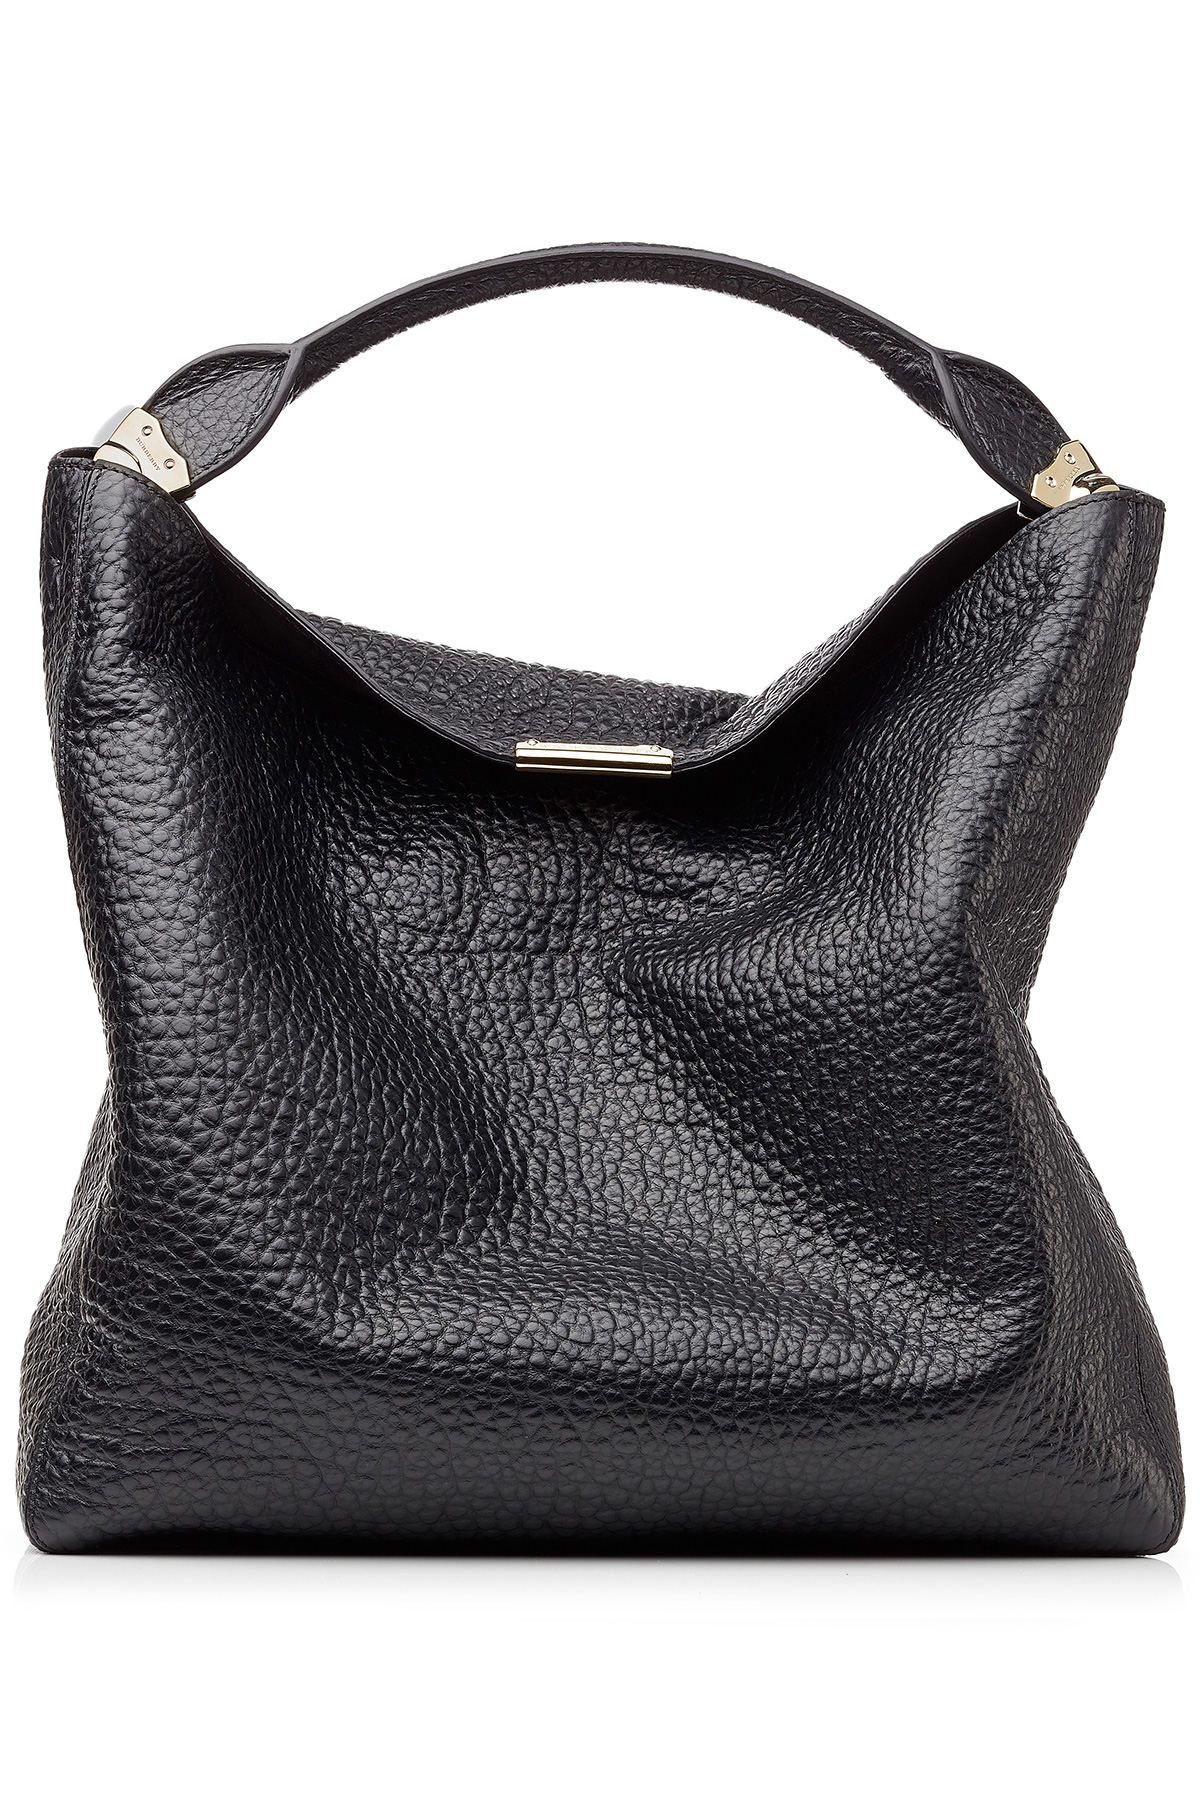 bcb5323a73e Lyst - Burberry Lindburn Embossed Leather Hobo Bag - Black in Black